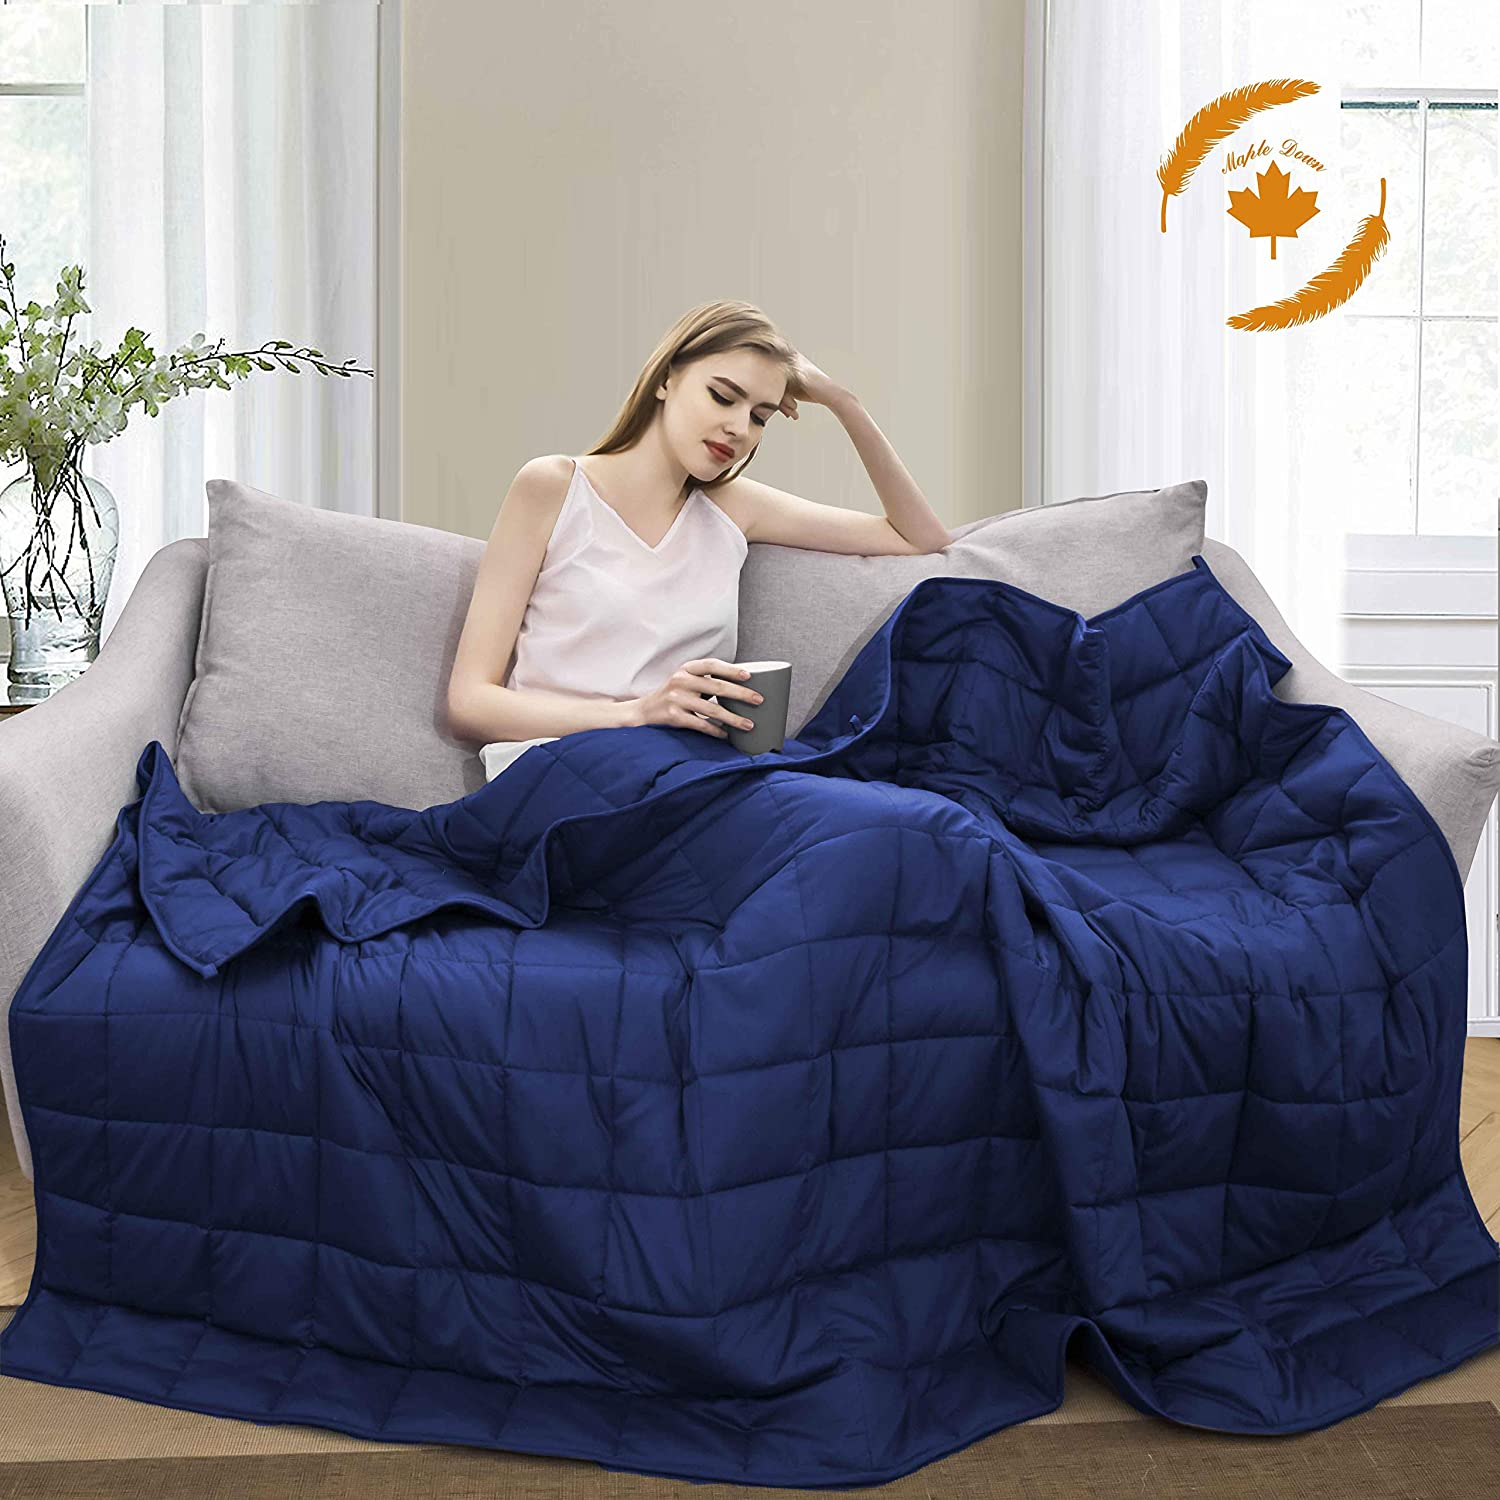 Maple Down Weighted Blanket for Adult 15 lbs Heavy Blanket, Twin Size, 7-Layer Cooling Weighted Blanket, 100% Cotton with Glass Beads, Body Weight Between 130lbs - 160lbs(Navy Blue)